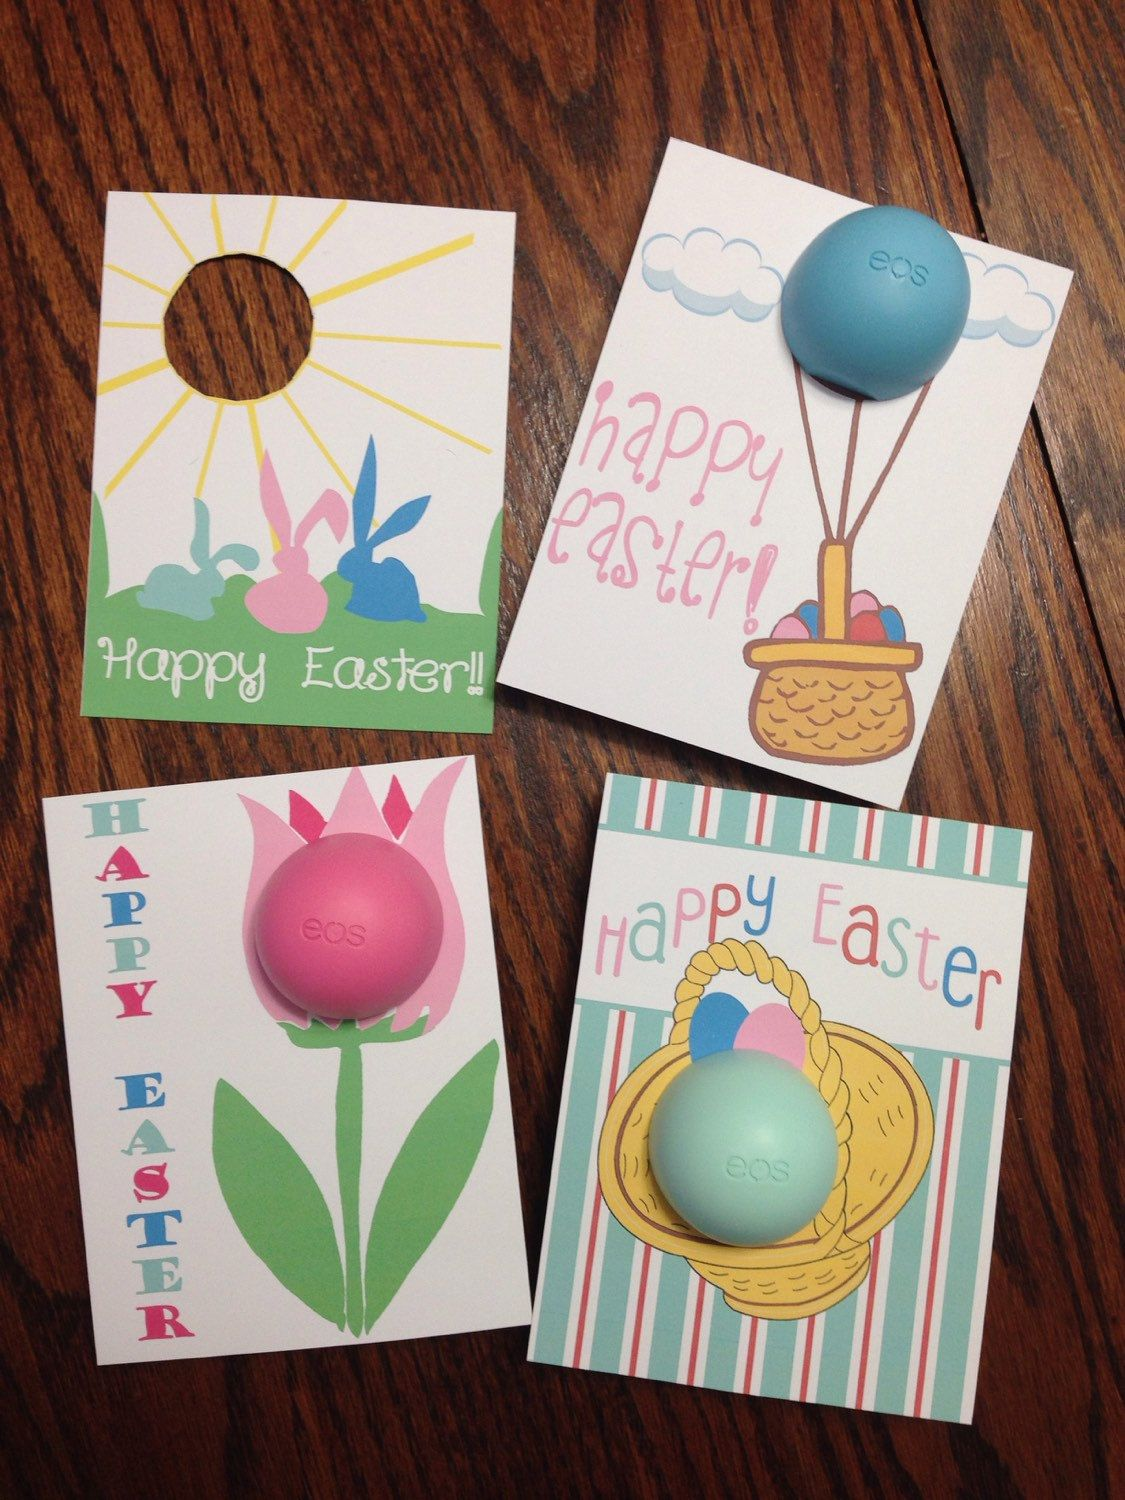 Easter cardsgift tags for eos lip balm printable instant